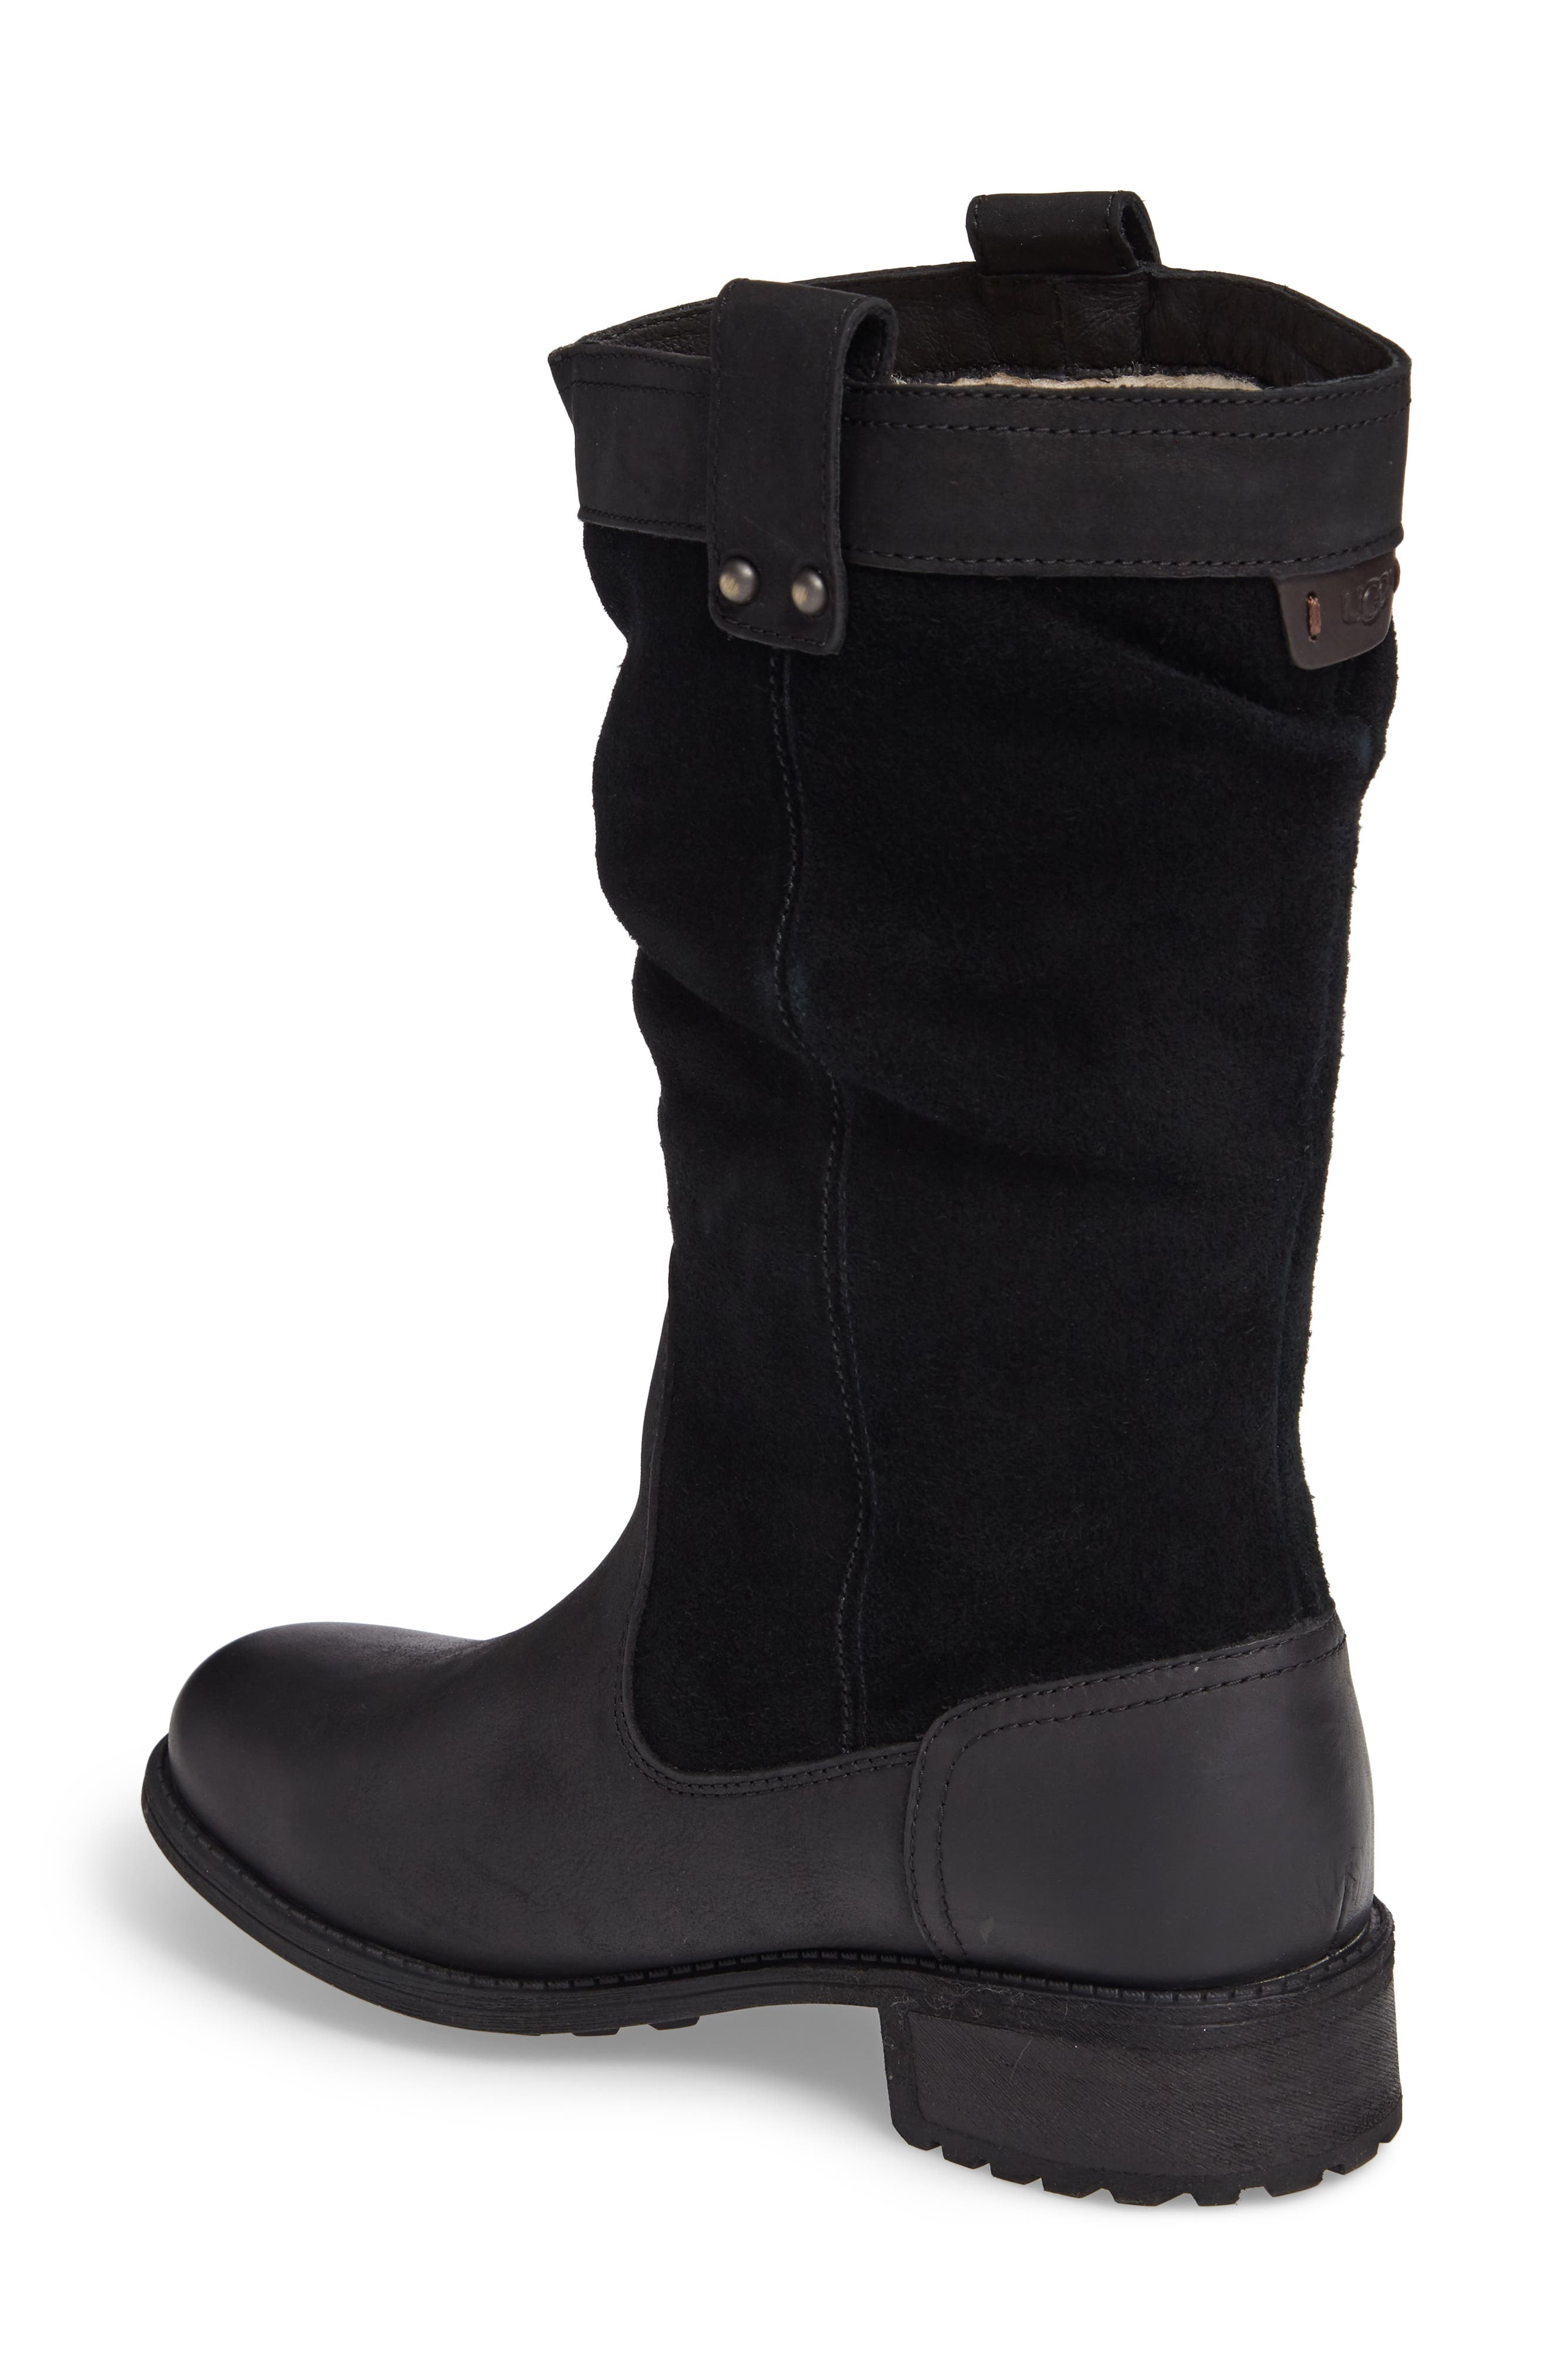 Bruckner Water Resistant Slouch Boot,                             Alternate thumbnail 2, color,                             Black Leather